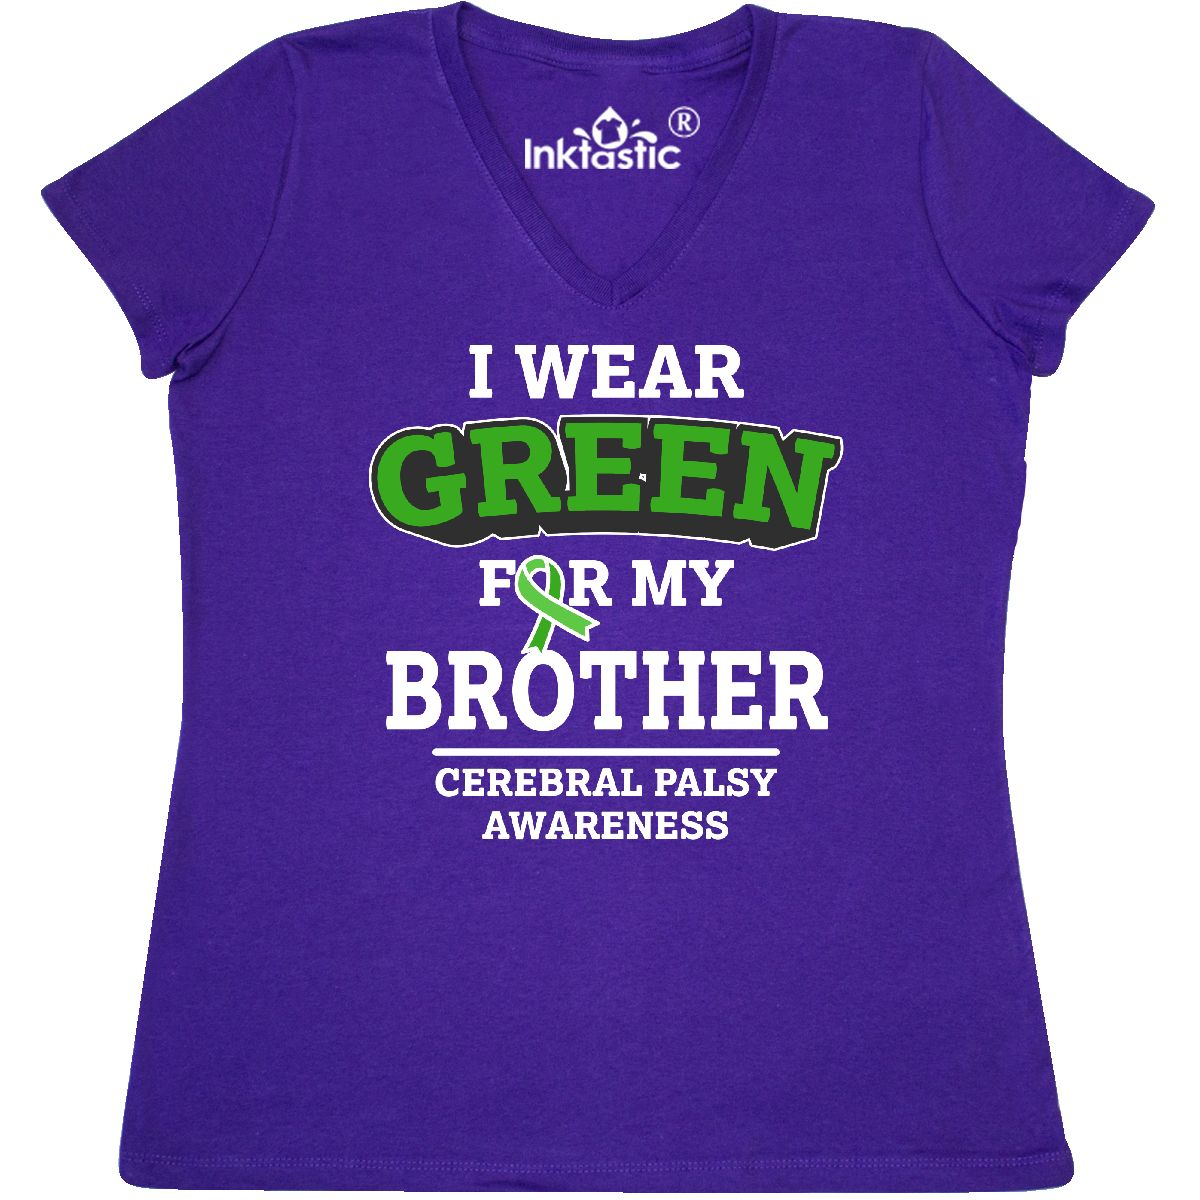 d2a19f26ae6 Details about Inktastic I Wear Green For My Brother For Cerebral Palsy  Women s V-Neck T-Shirt